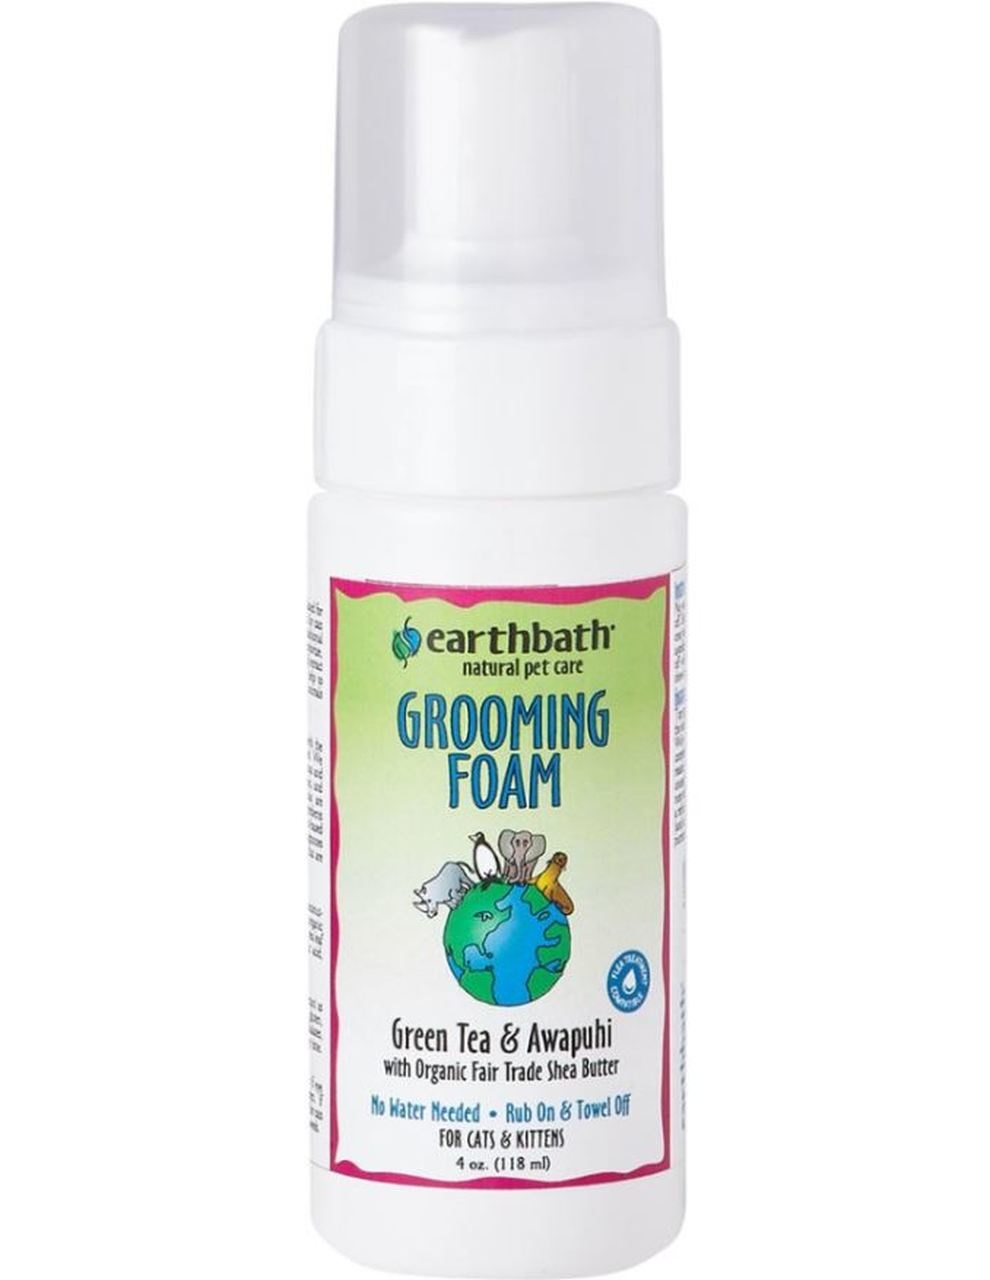 Earthbath Earthbath Green Tea & Awapuhi Cat Grooming Foam 4oz